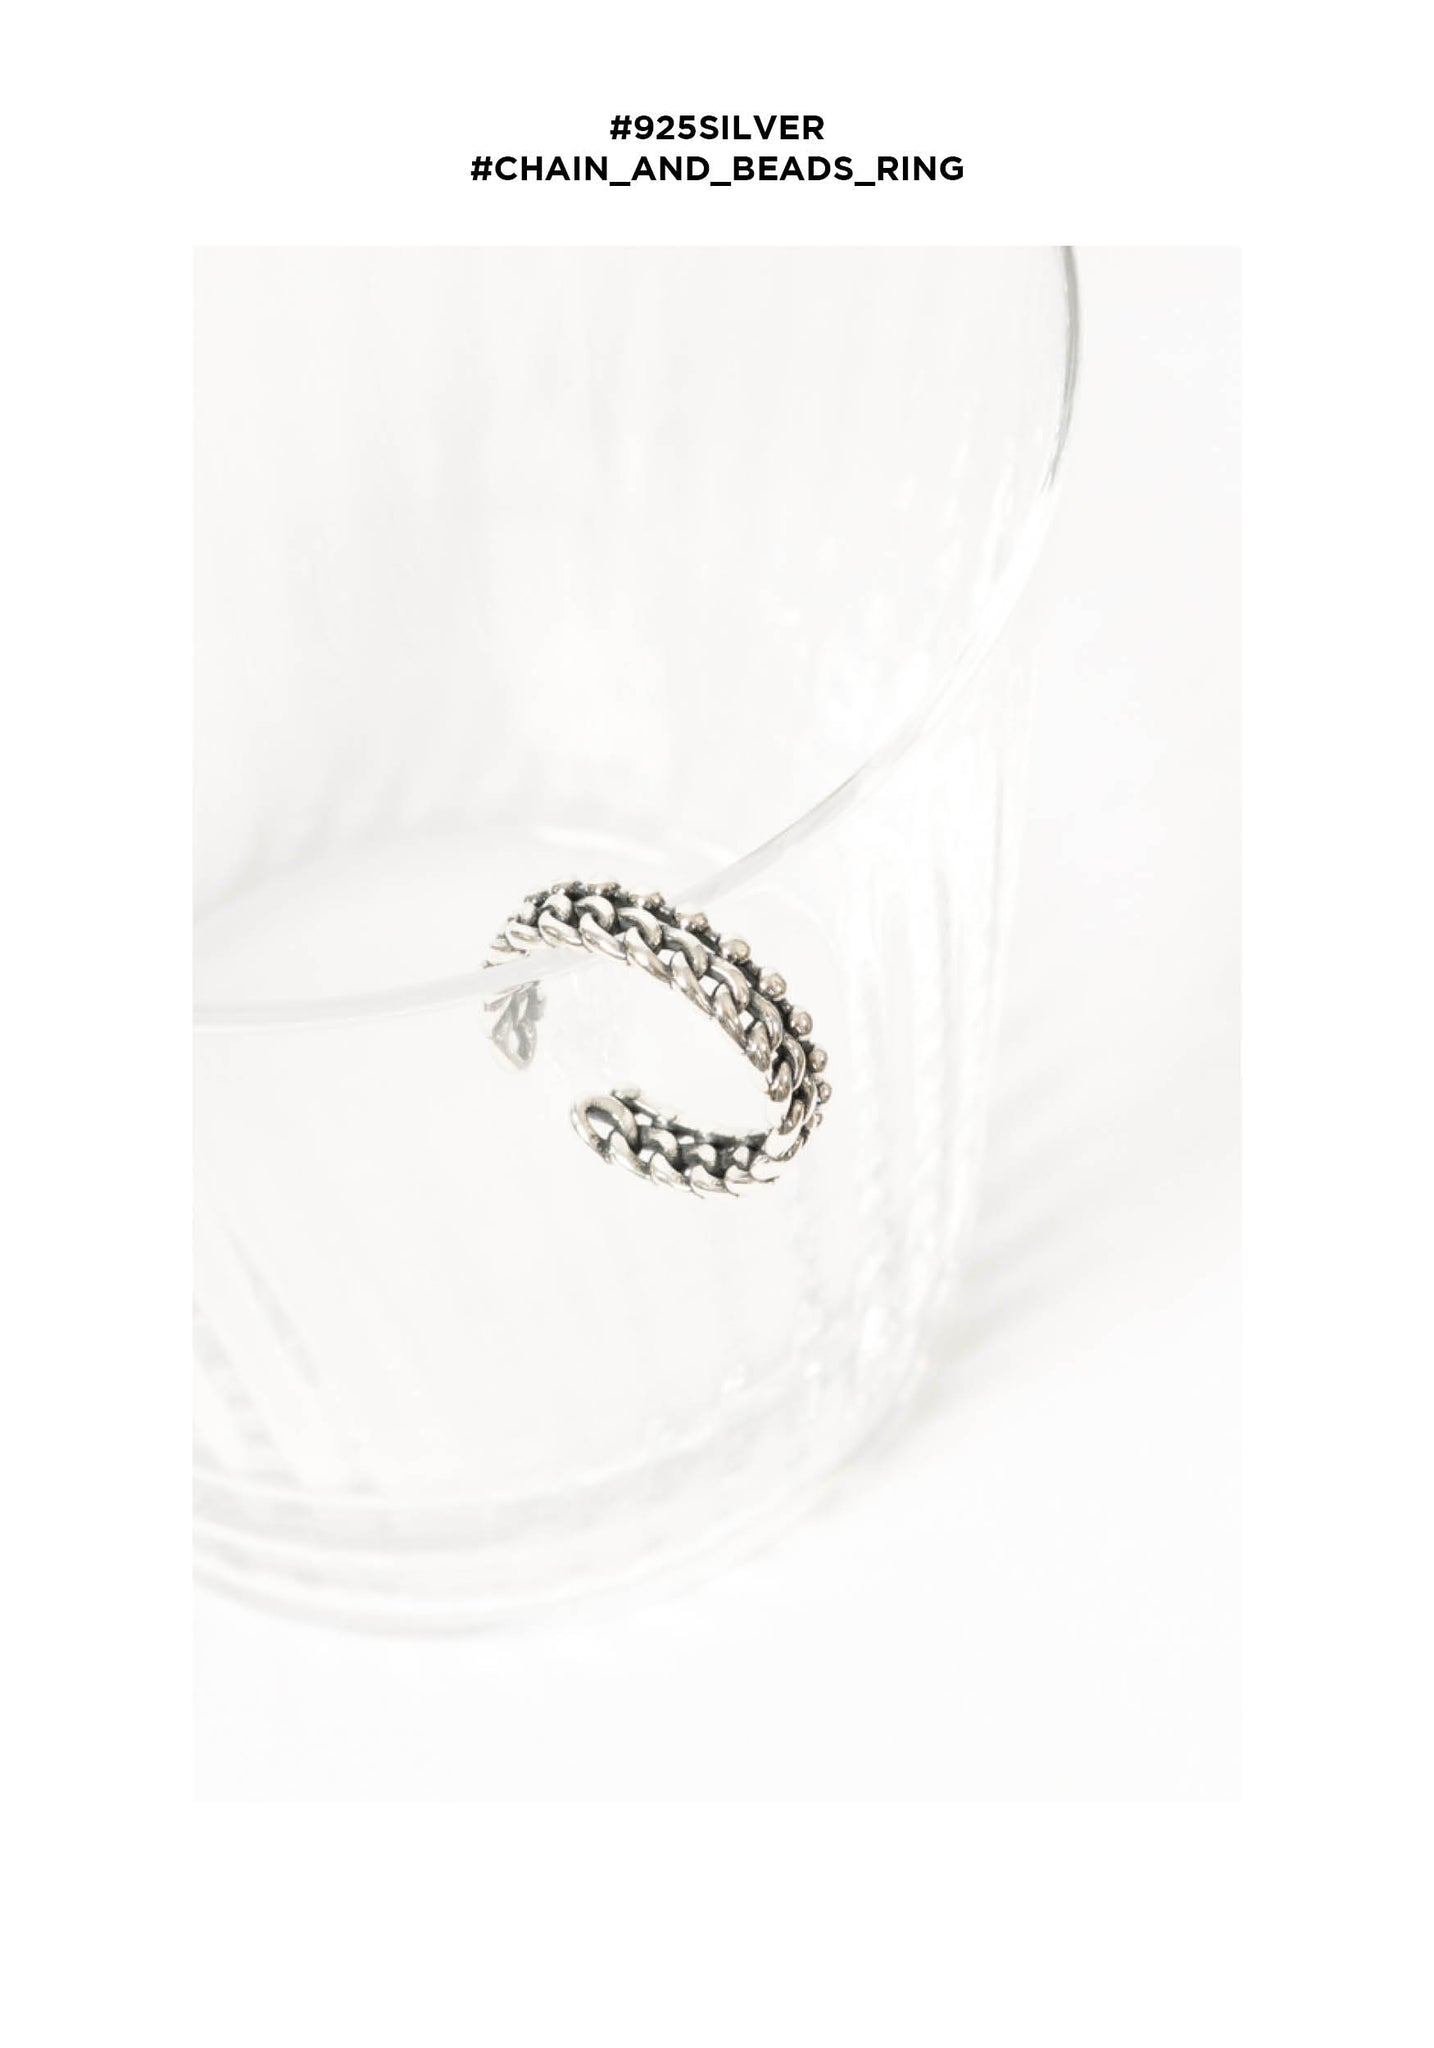 925 Silver Chain And Beads Ring - whoami